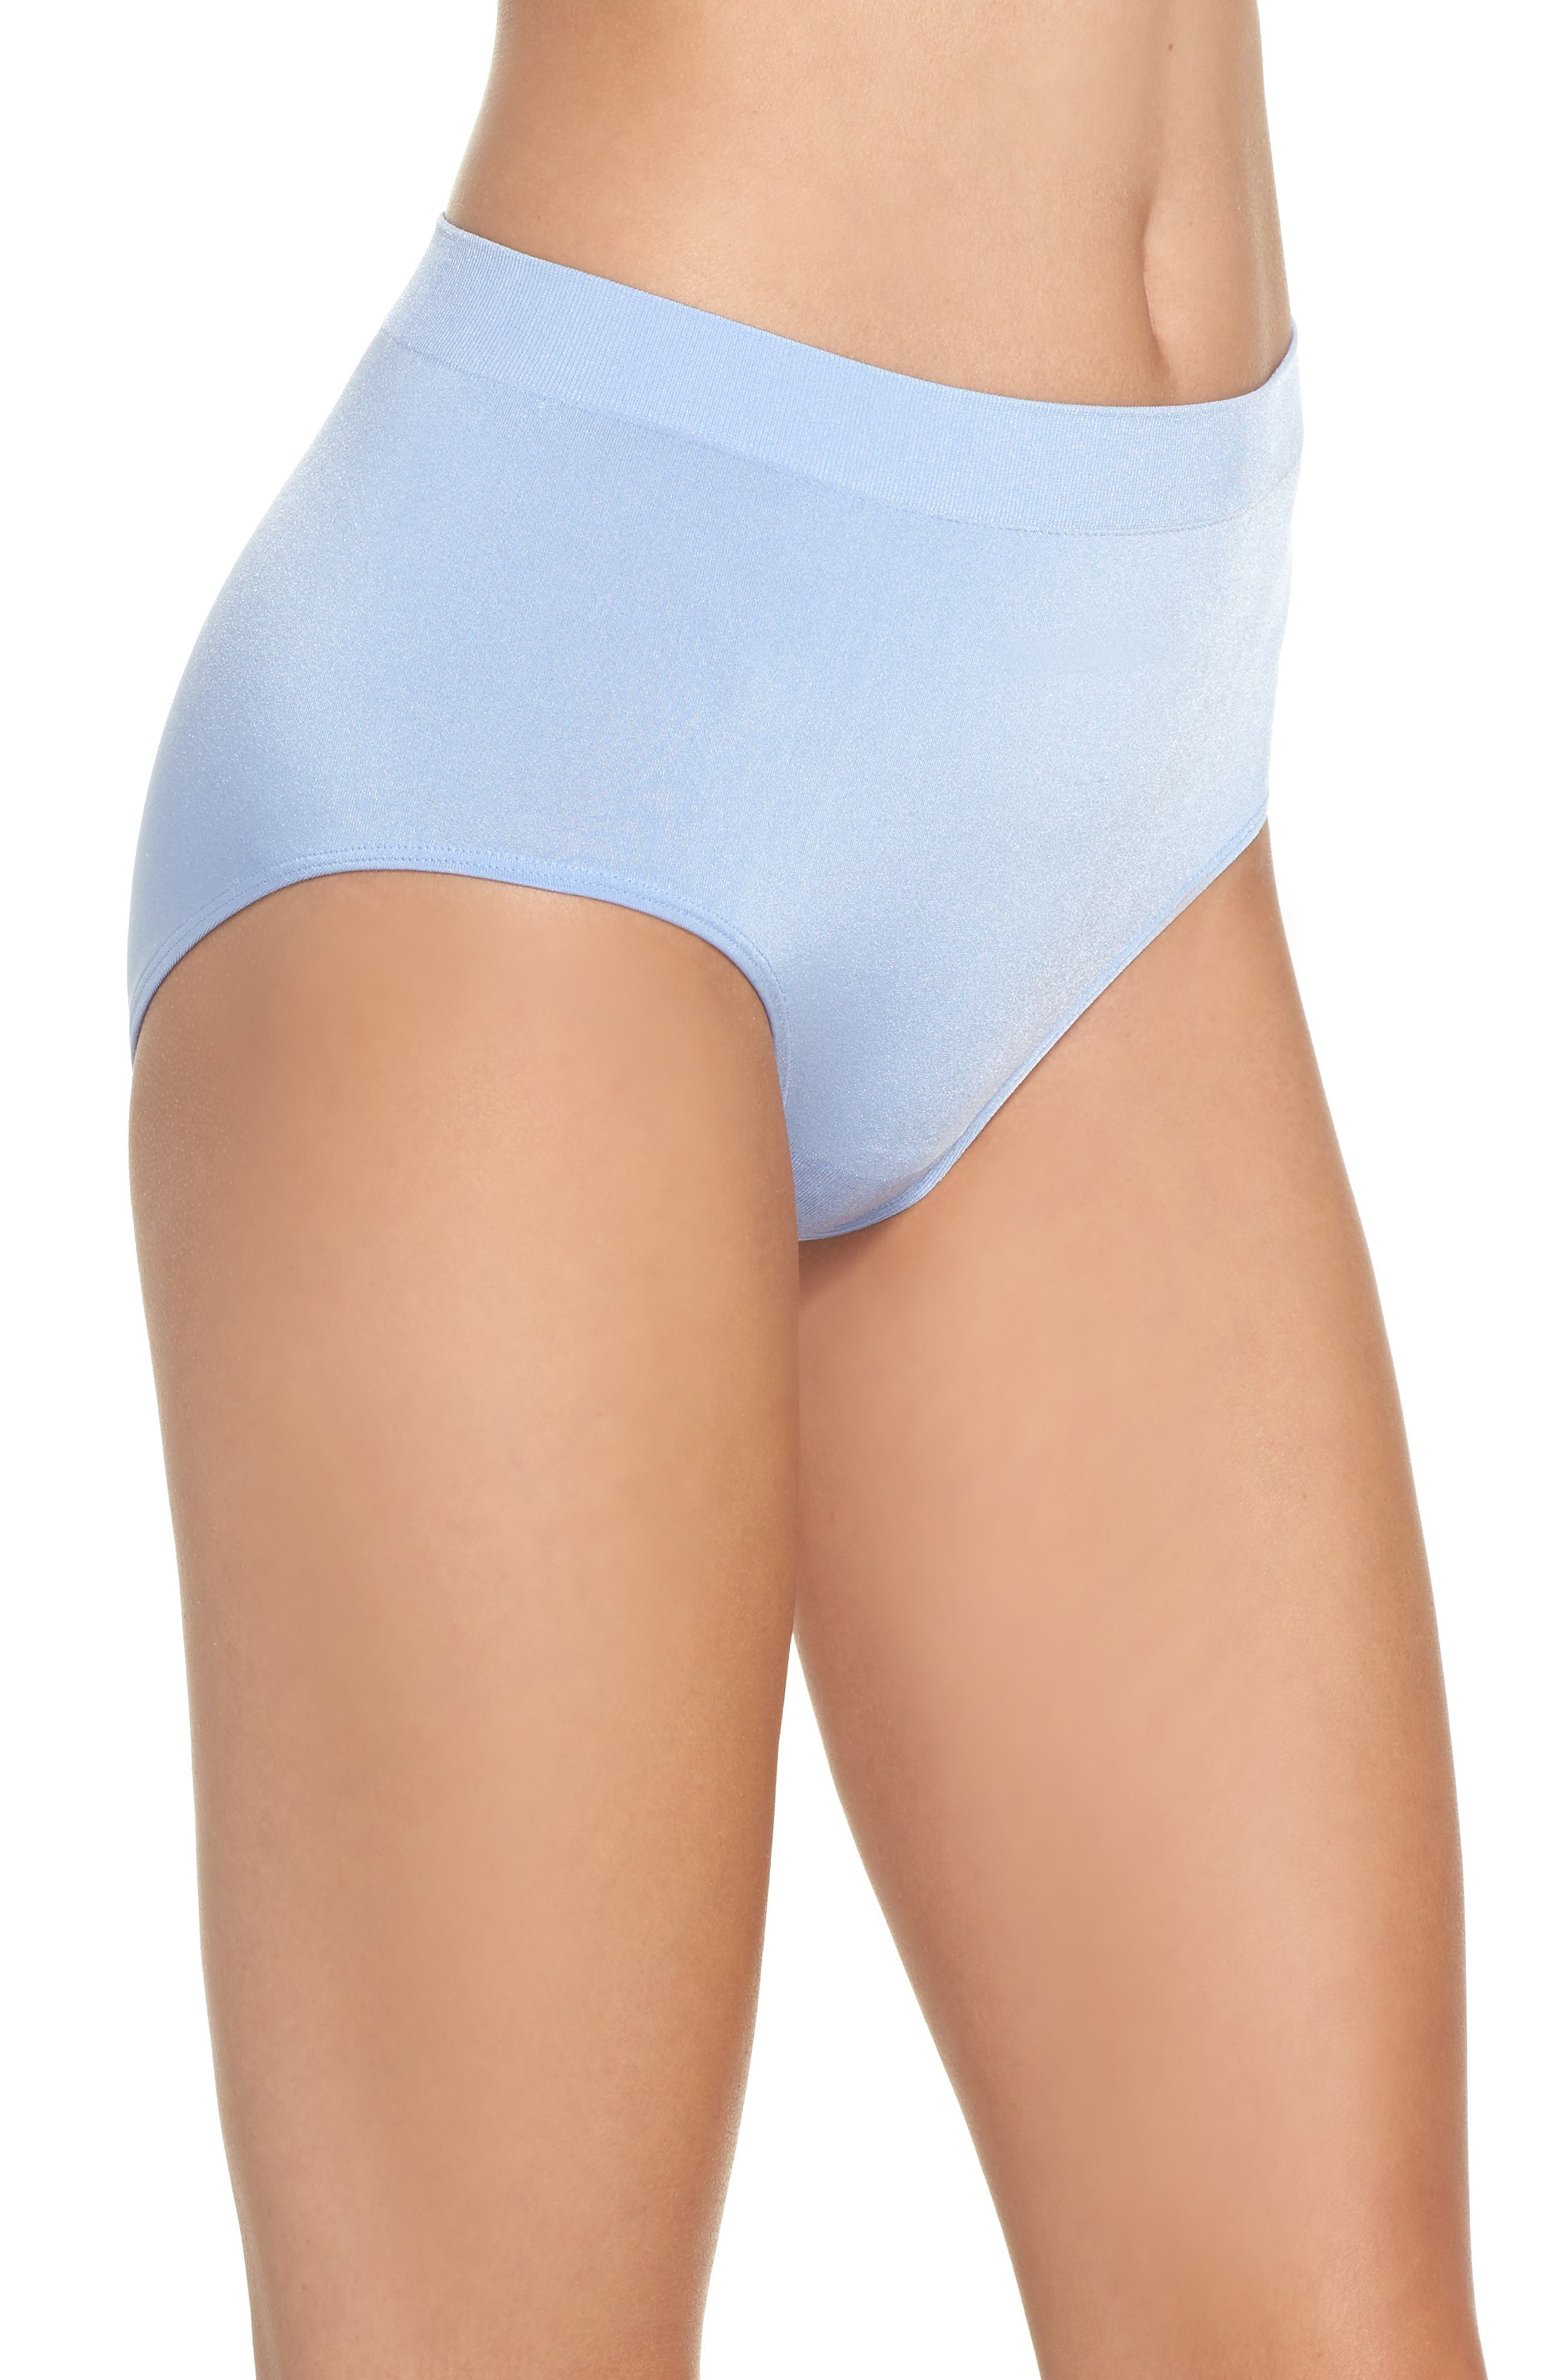 B Smooth Briefs,                             Alternate thumbnail 143, color,